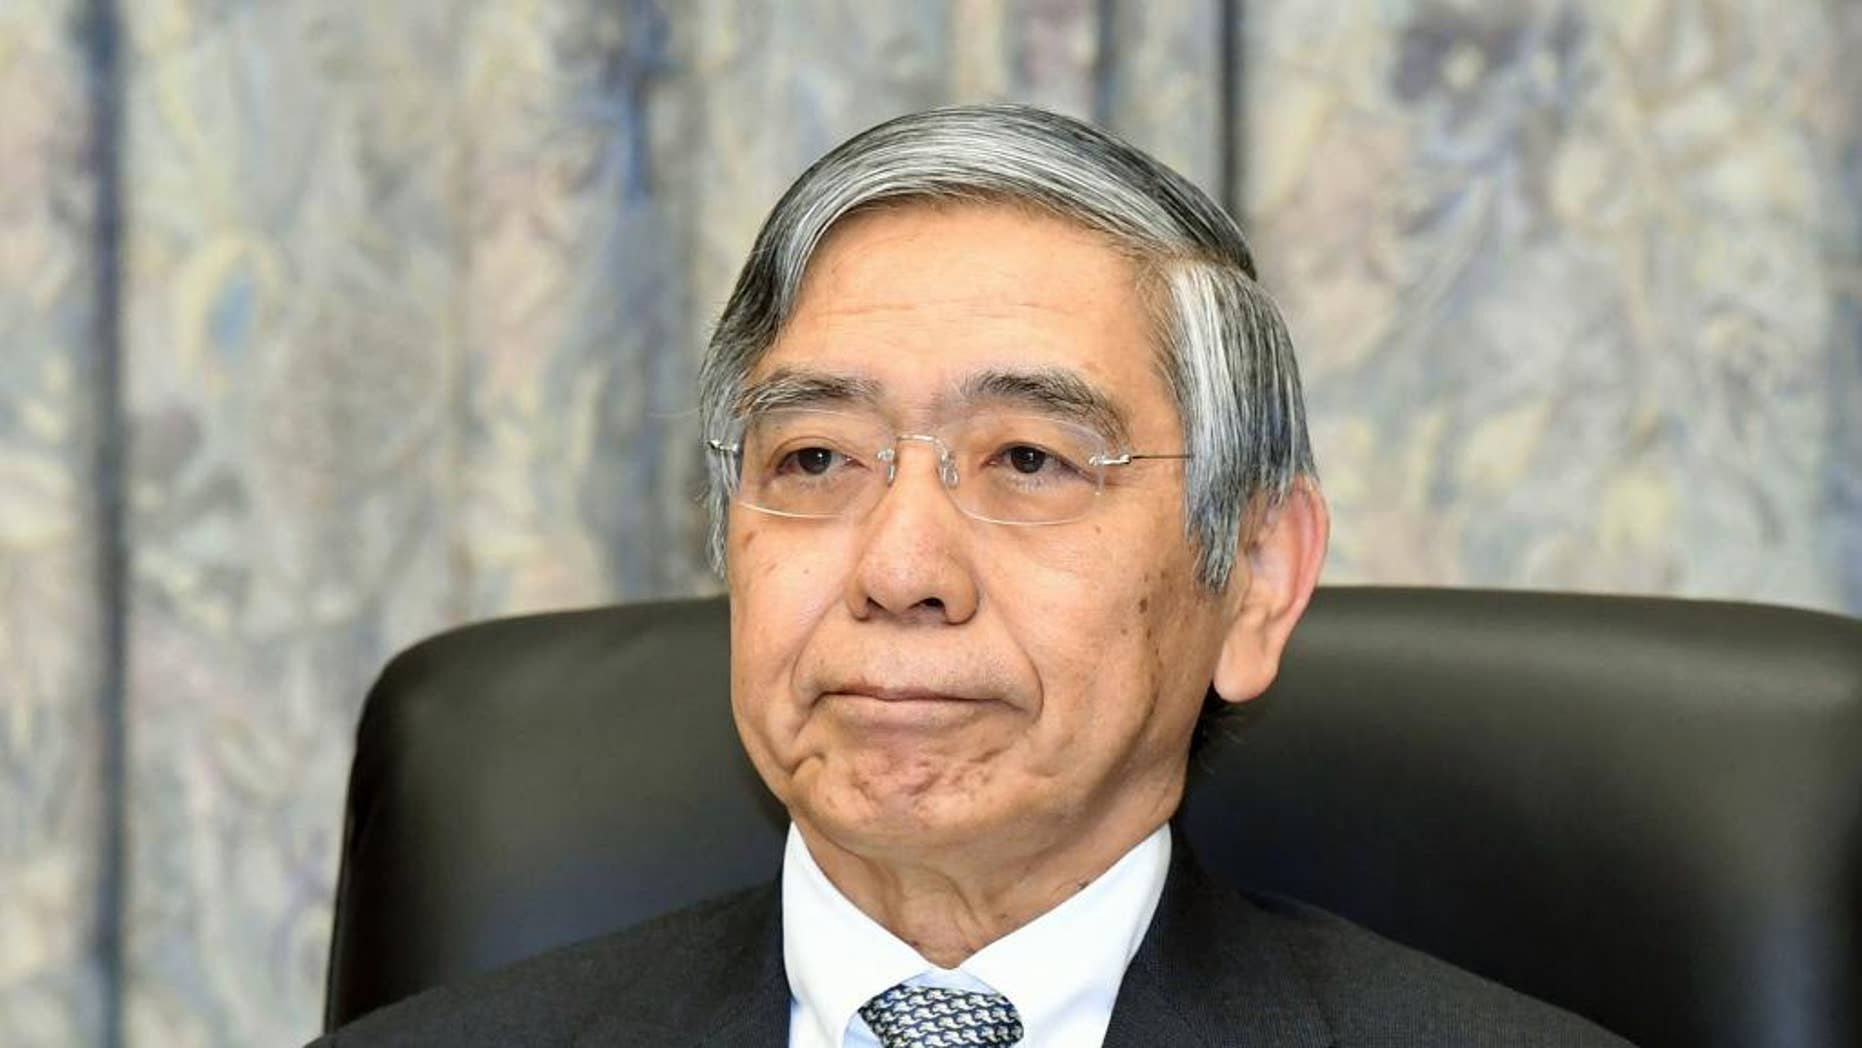 Bank of Japan Gov. Haruhiko Kuroda attends a meeting at the central bank headquarters in Tokyo Tuesday, Dec. 20, 2016. Japan's central bank wrapped up its final meeting of the year Tuesday on an upbeat note, citing signs of improvement in exports, investment and industrial production, while keeping its ultra-lax monetary policy unchanged. (Kyodo News via AP)